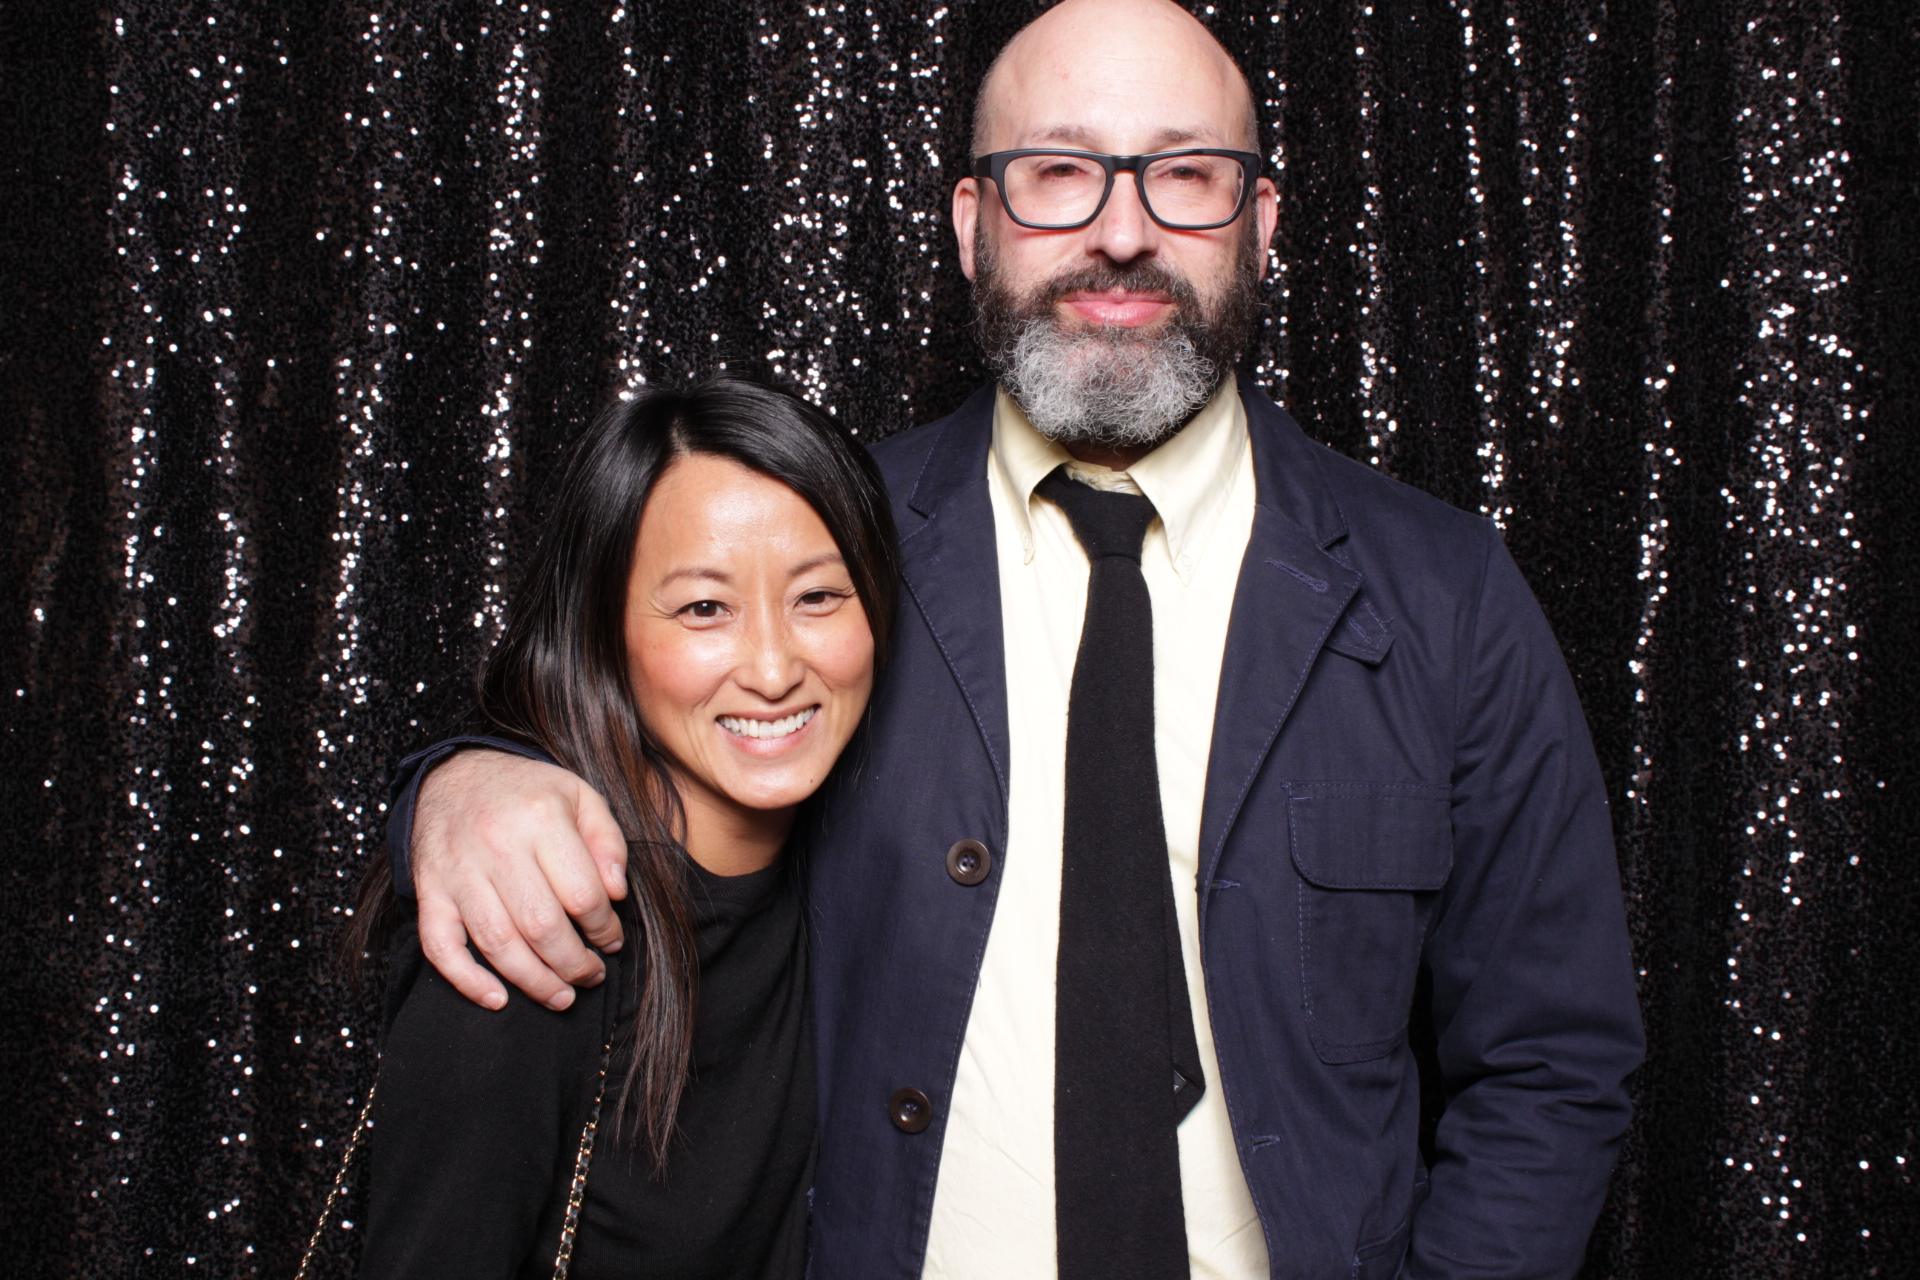 Minneapolis_birthday_party_photo_booth_rentals (9).jpg